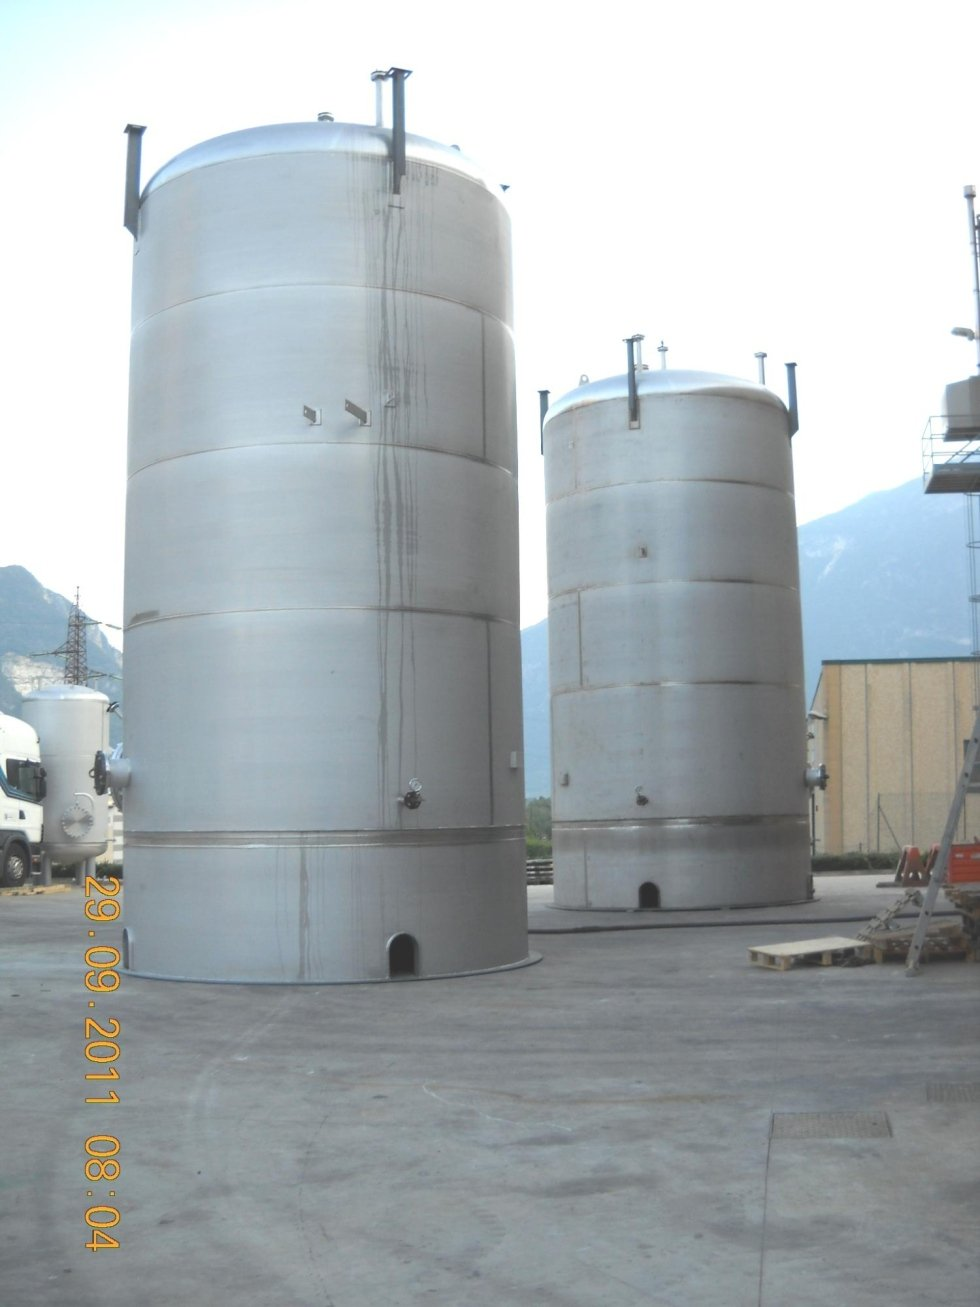 urea tanks for incinerator